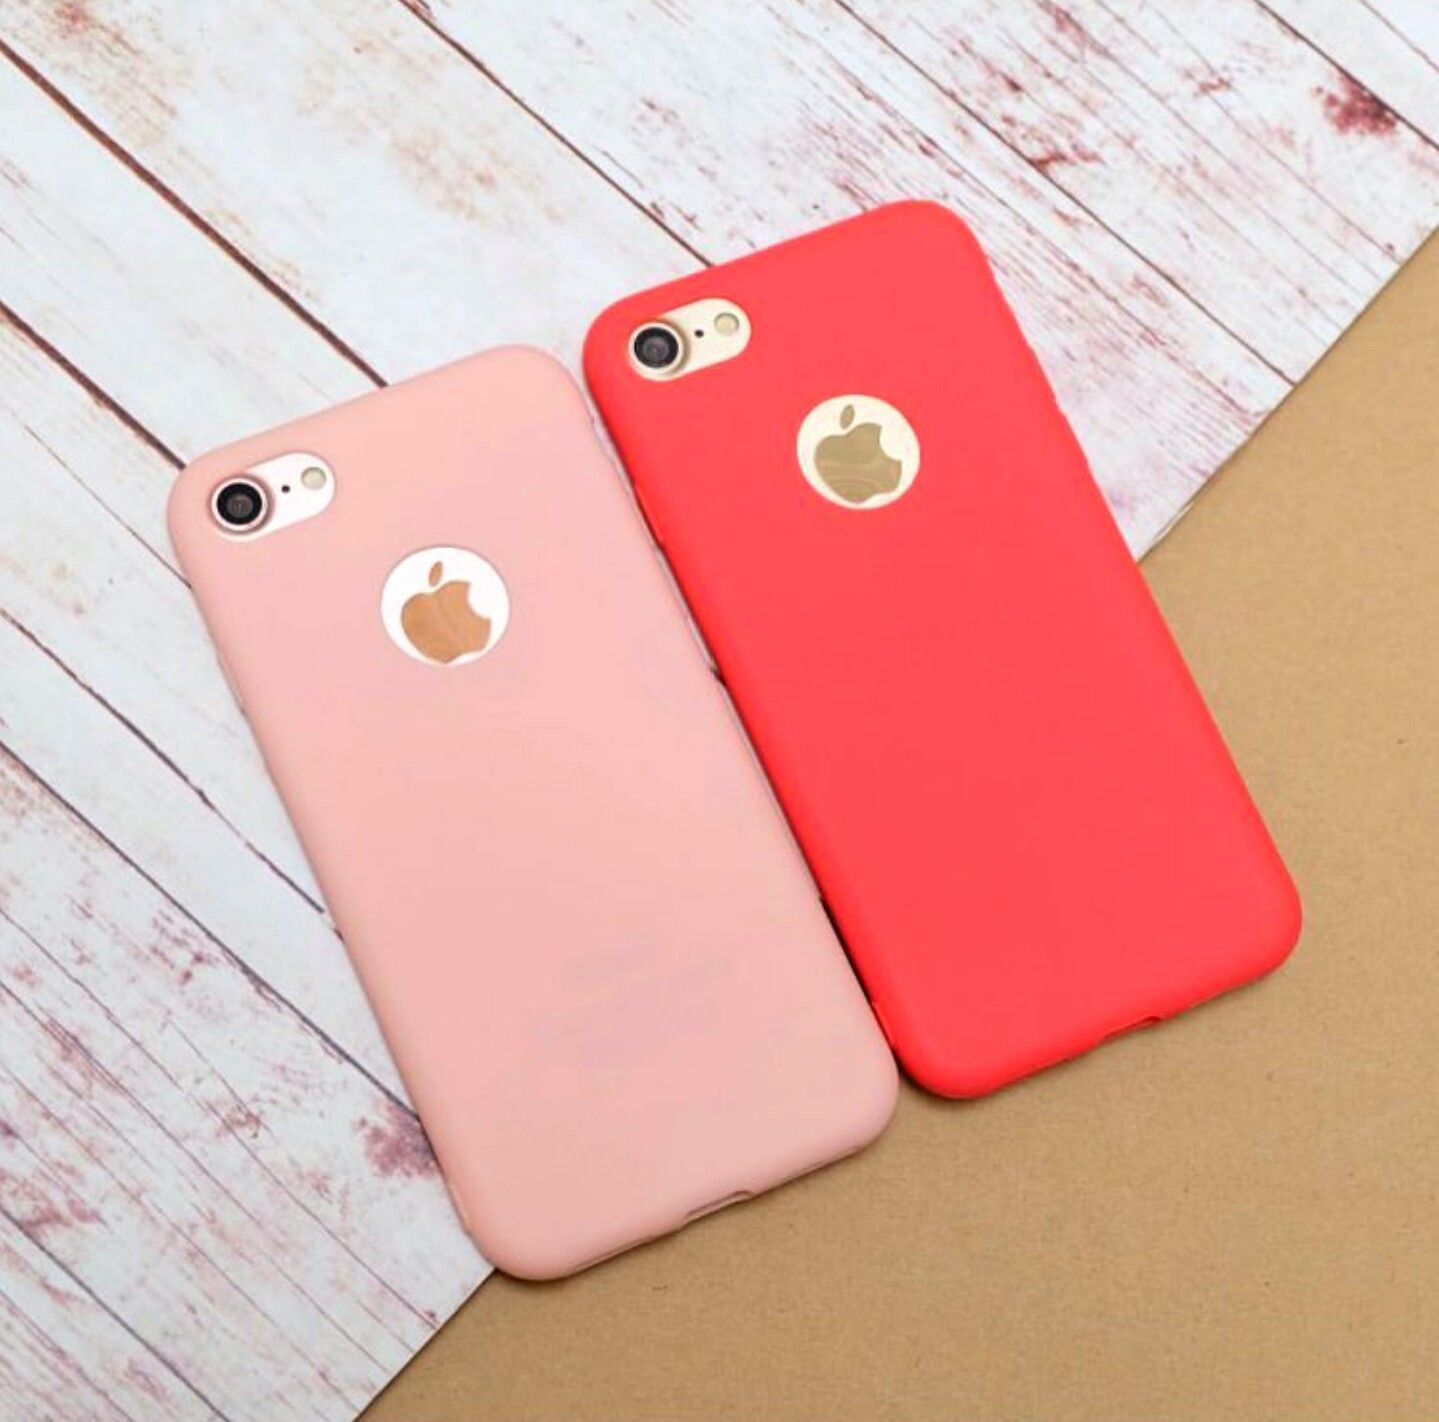 buy online 31fdb 4511b Matte Candy Color Silicone Soft iPhone 7 / 8 Cases in 2019 | iPhone ...